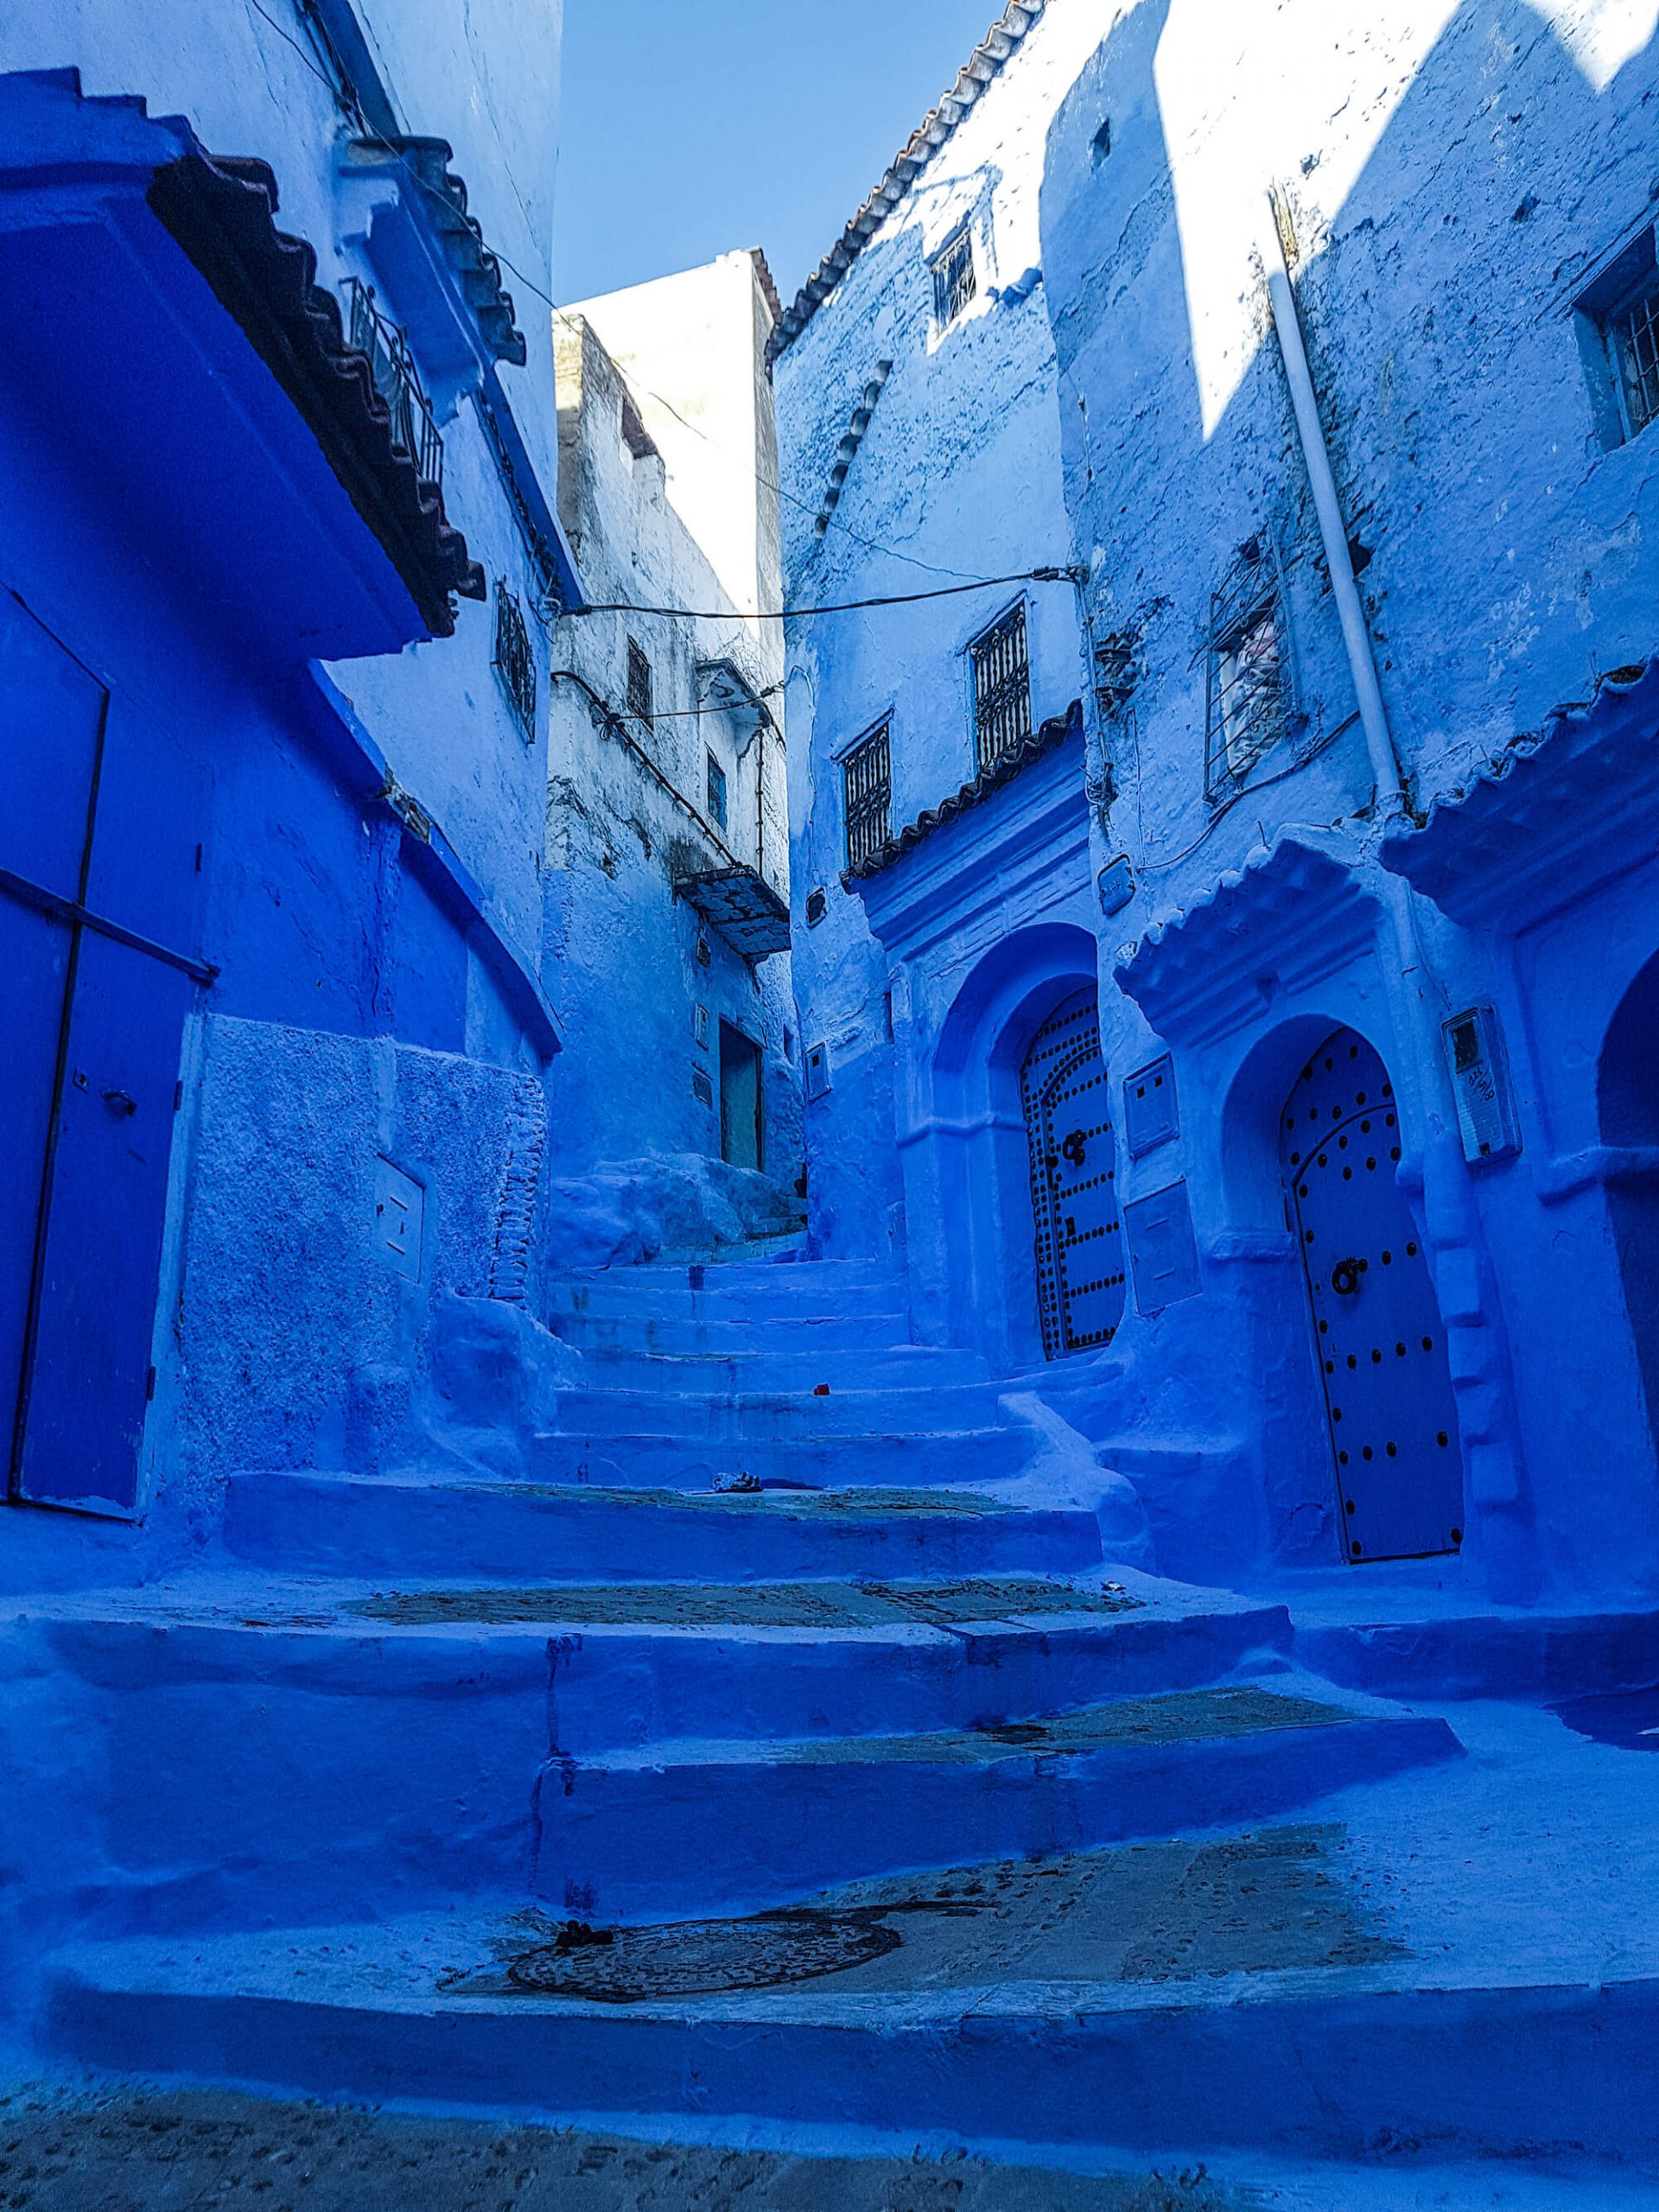 Sahara Desert Tour - Top Ten Things To Do in Morocco - Discover Chefchaouen